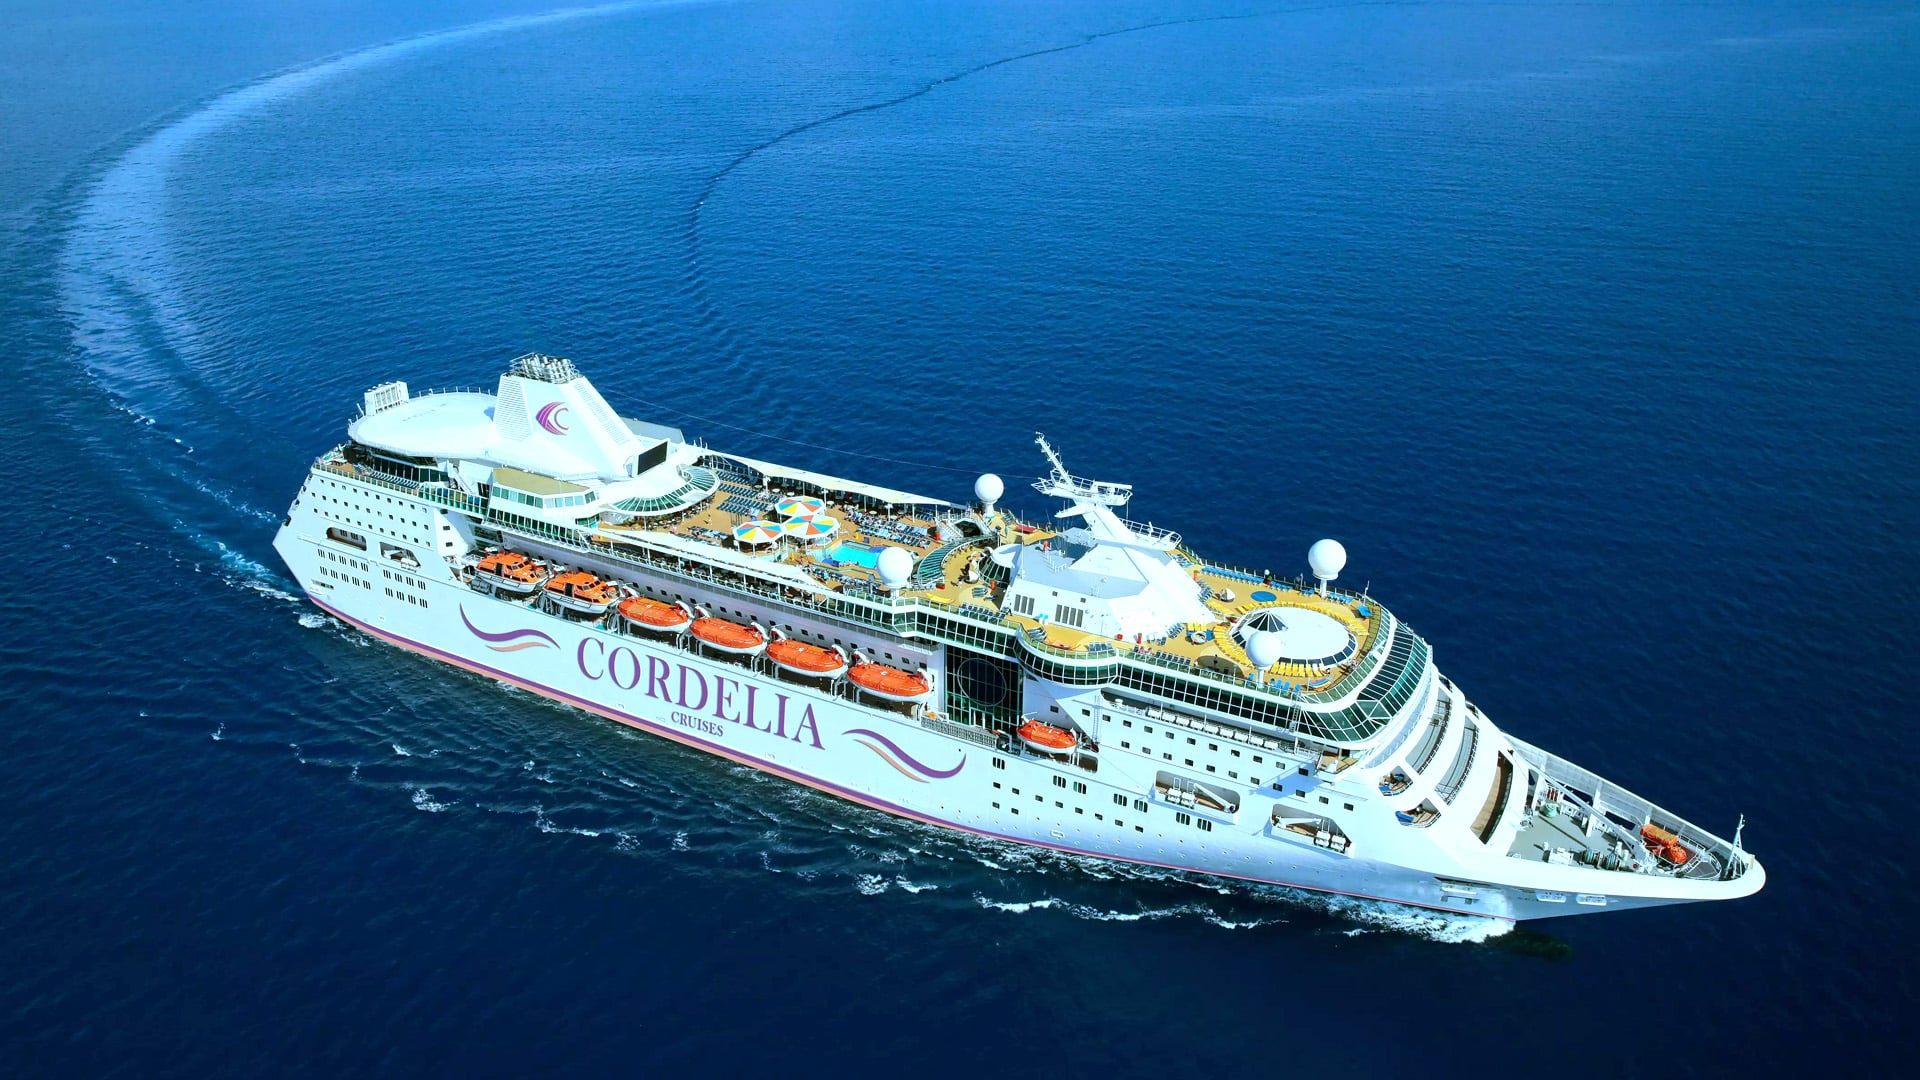 IRCTC to launch cruise liner tours from Sep 18. Bookings open